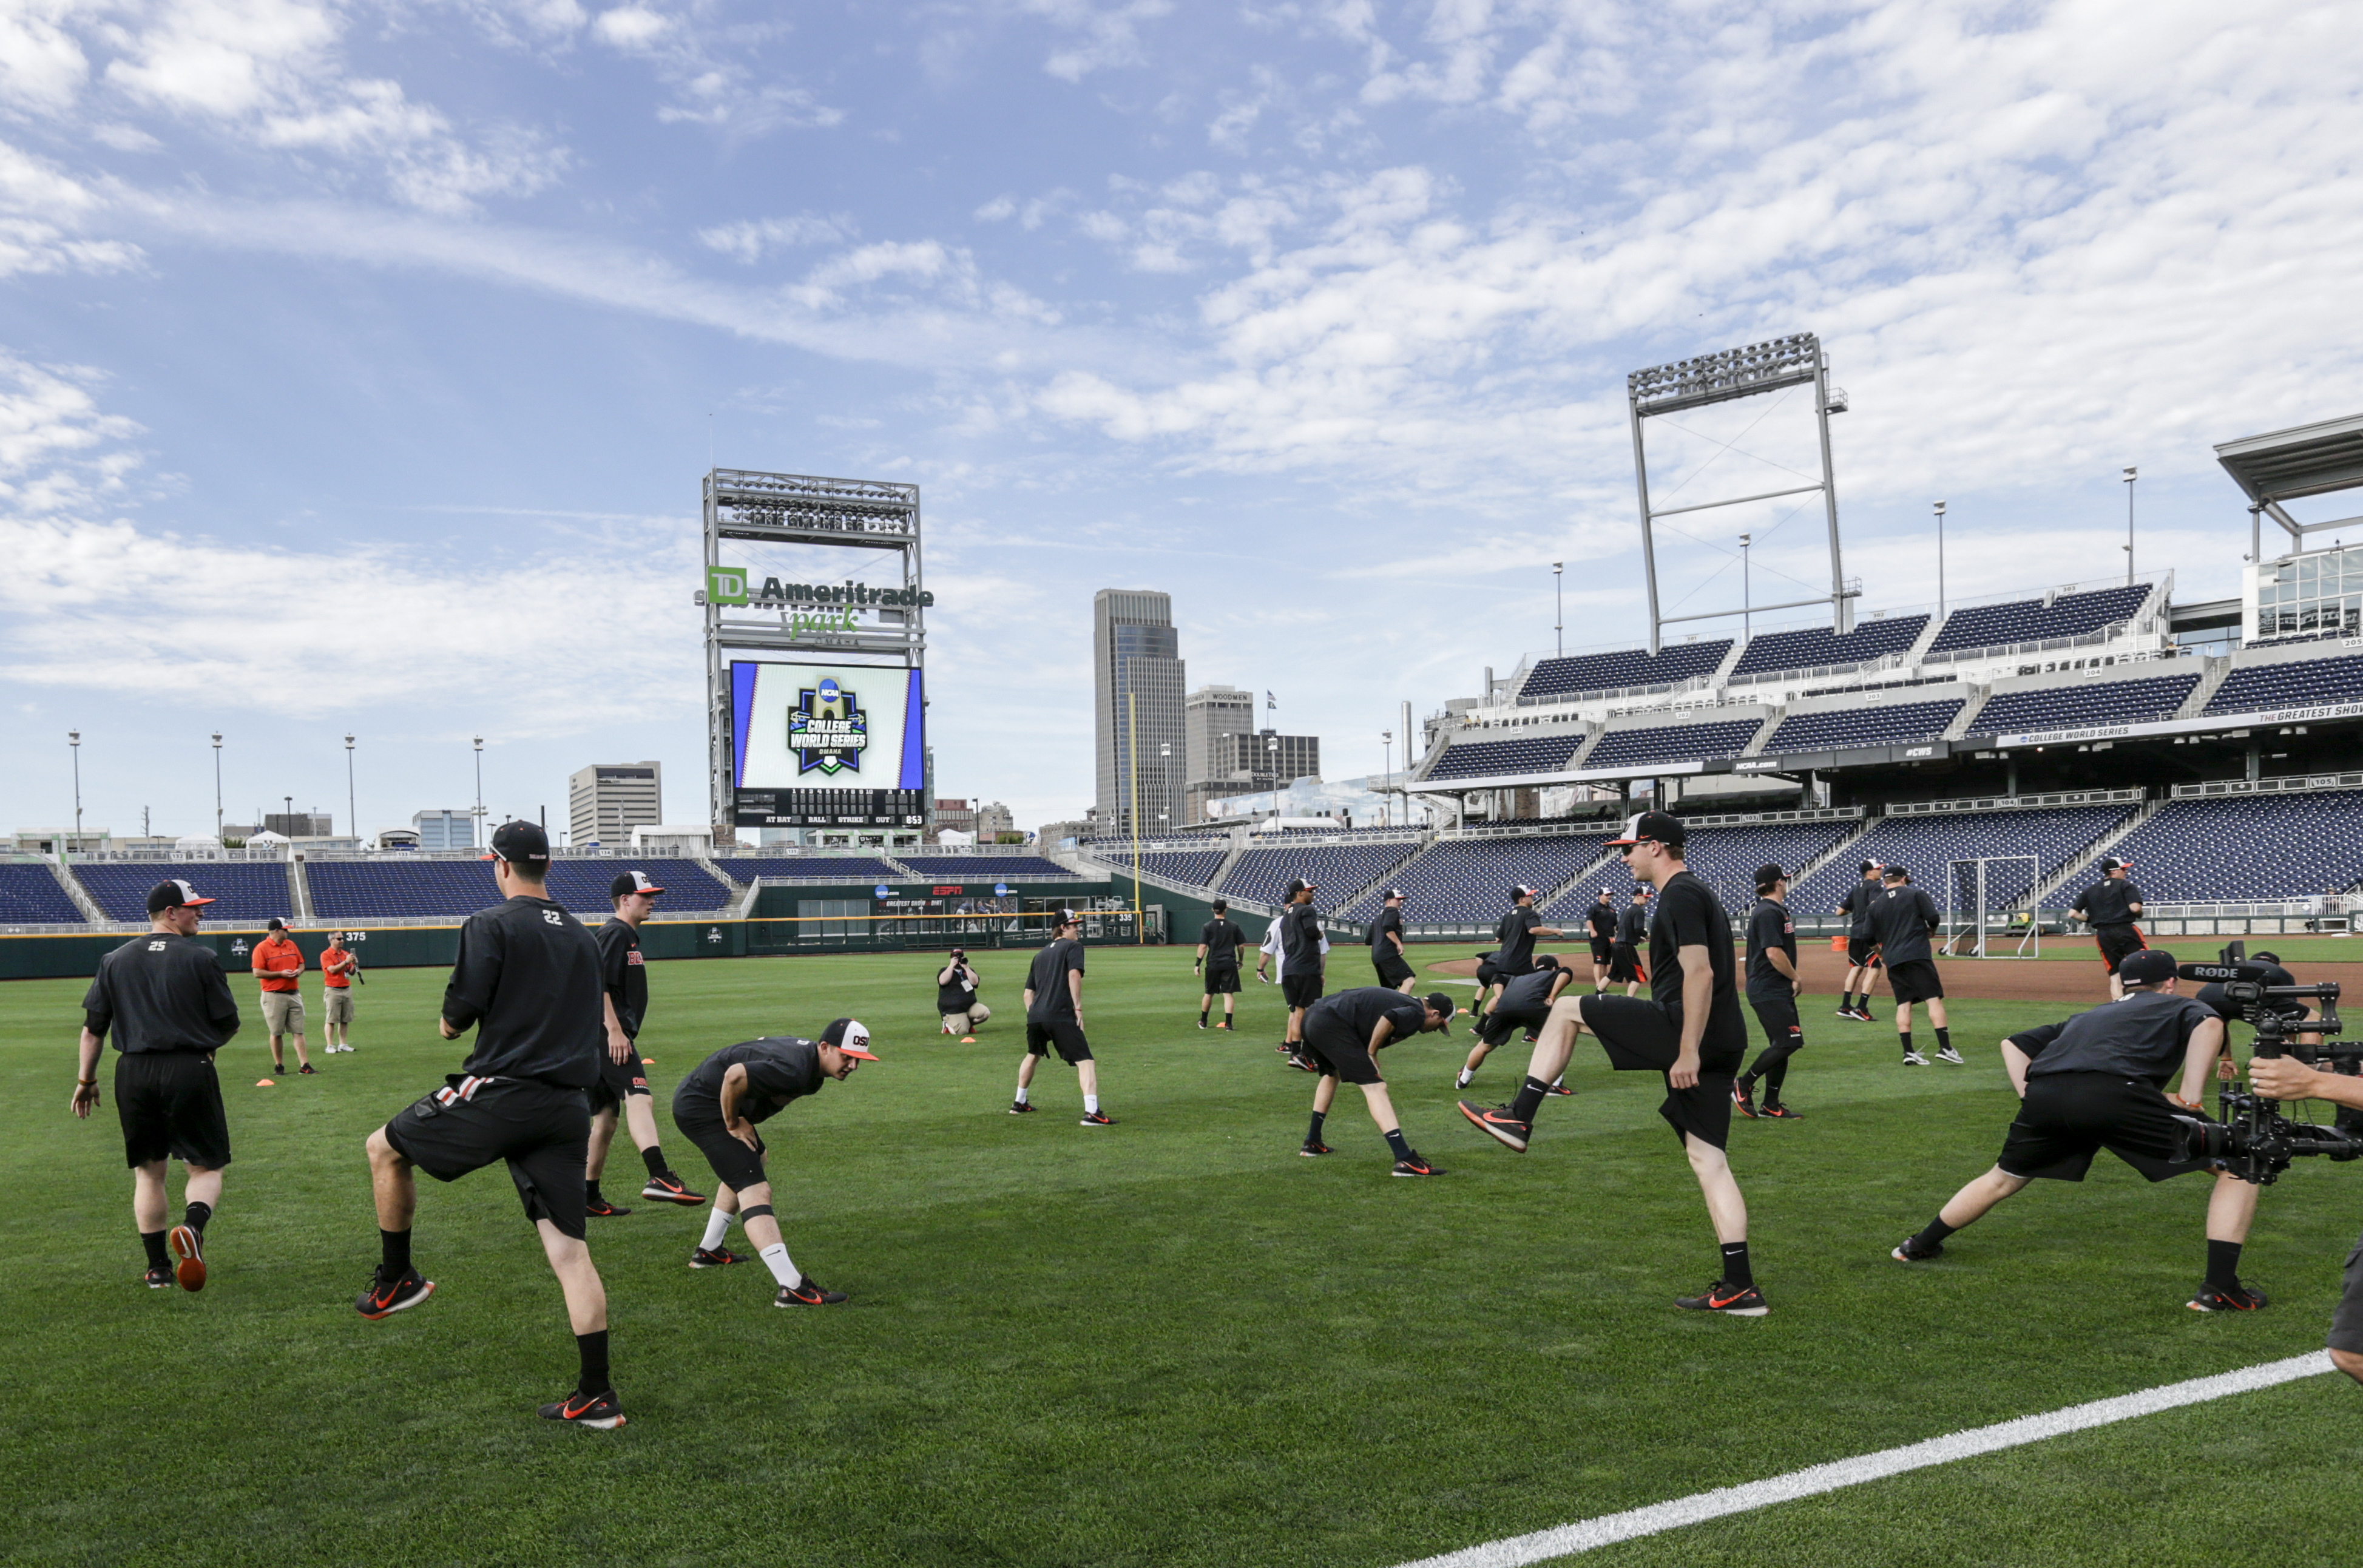 Oregon State players warm up at the start of team practice in Omaha, Neb., Friday, June 16, 2017. Oregon State is on the cusp of joining the company of the greatest college baseball teams of all time. At 54-4, the Beavers enter the College World Series with the fewest losses of any team since 1982. (AP Photo/Nati Harnik)